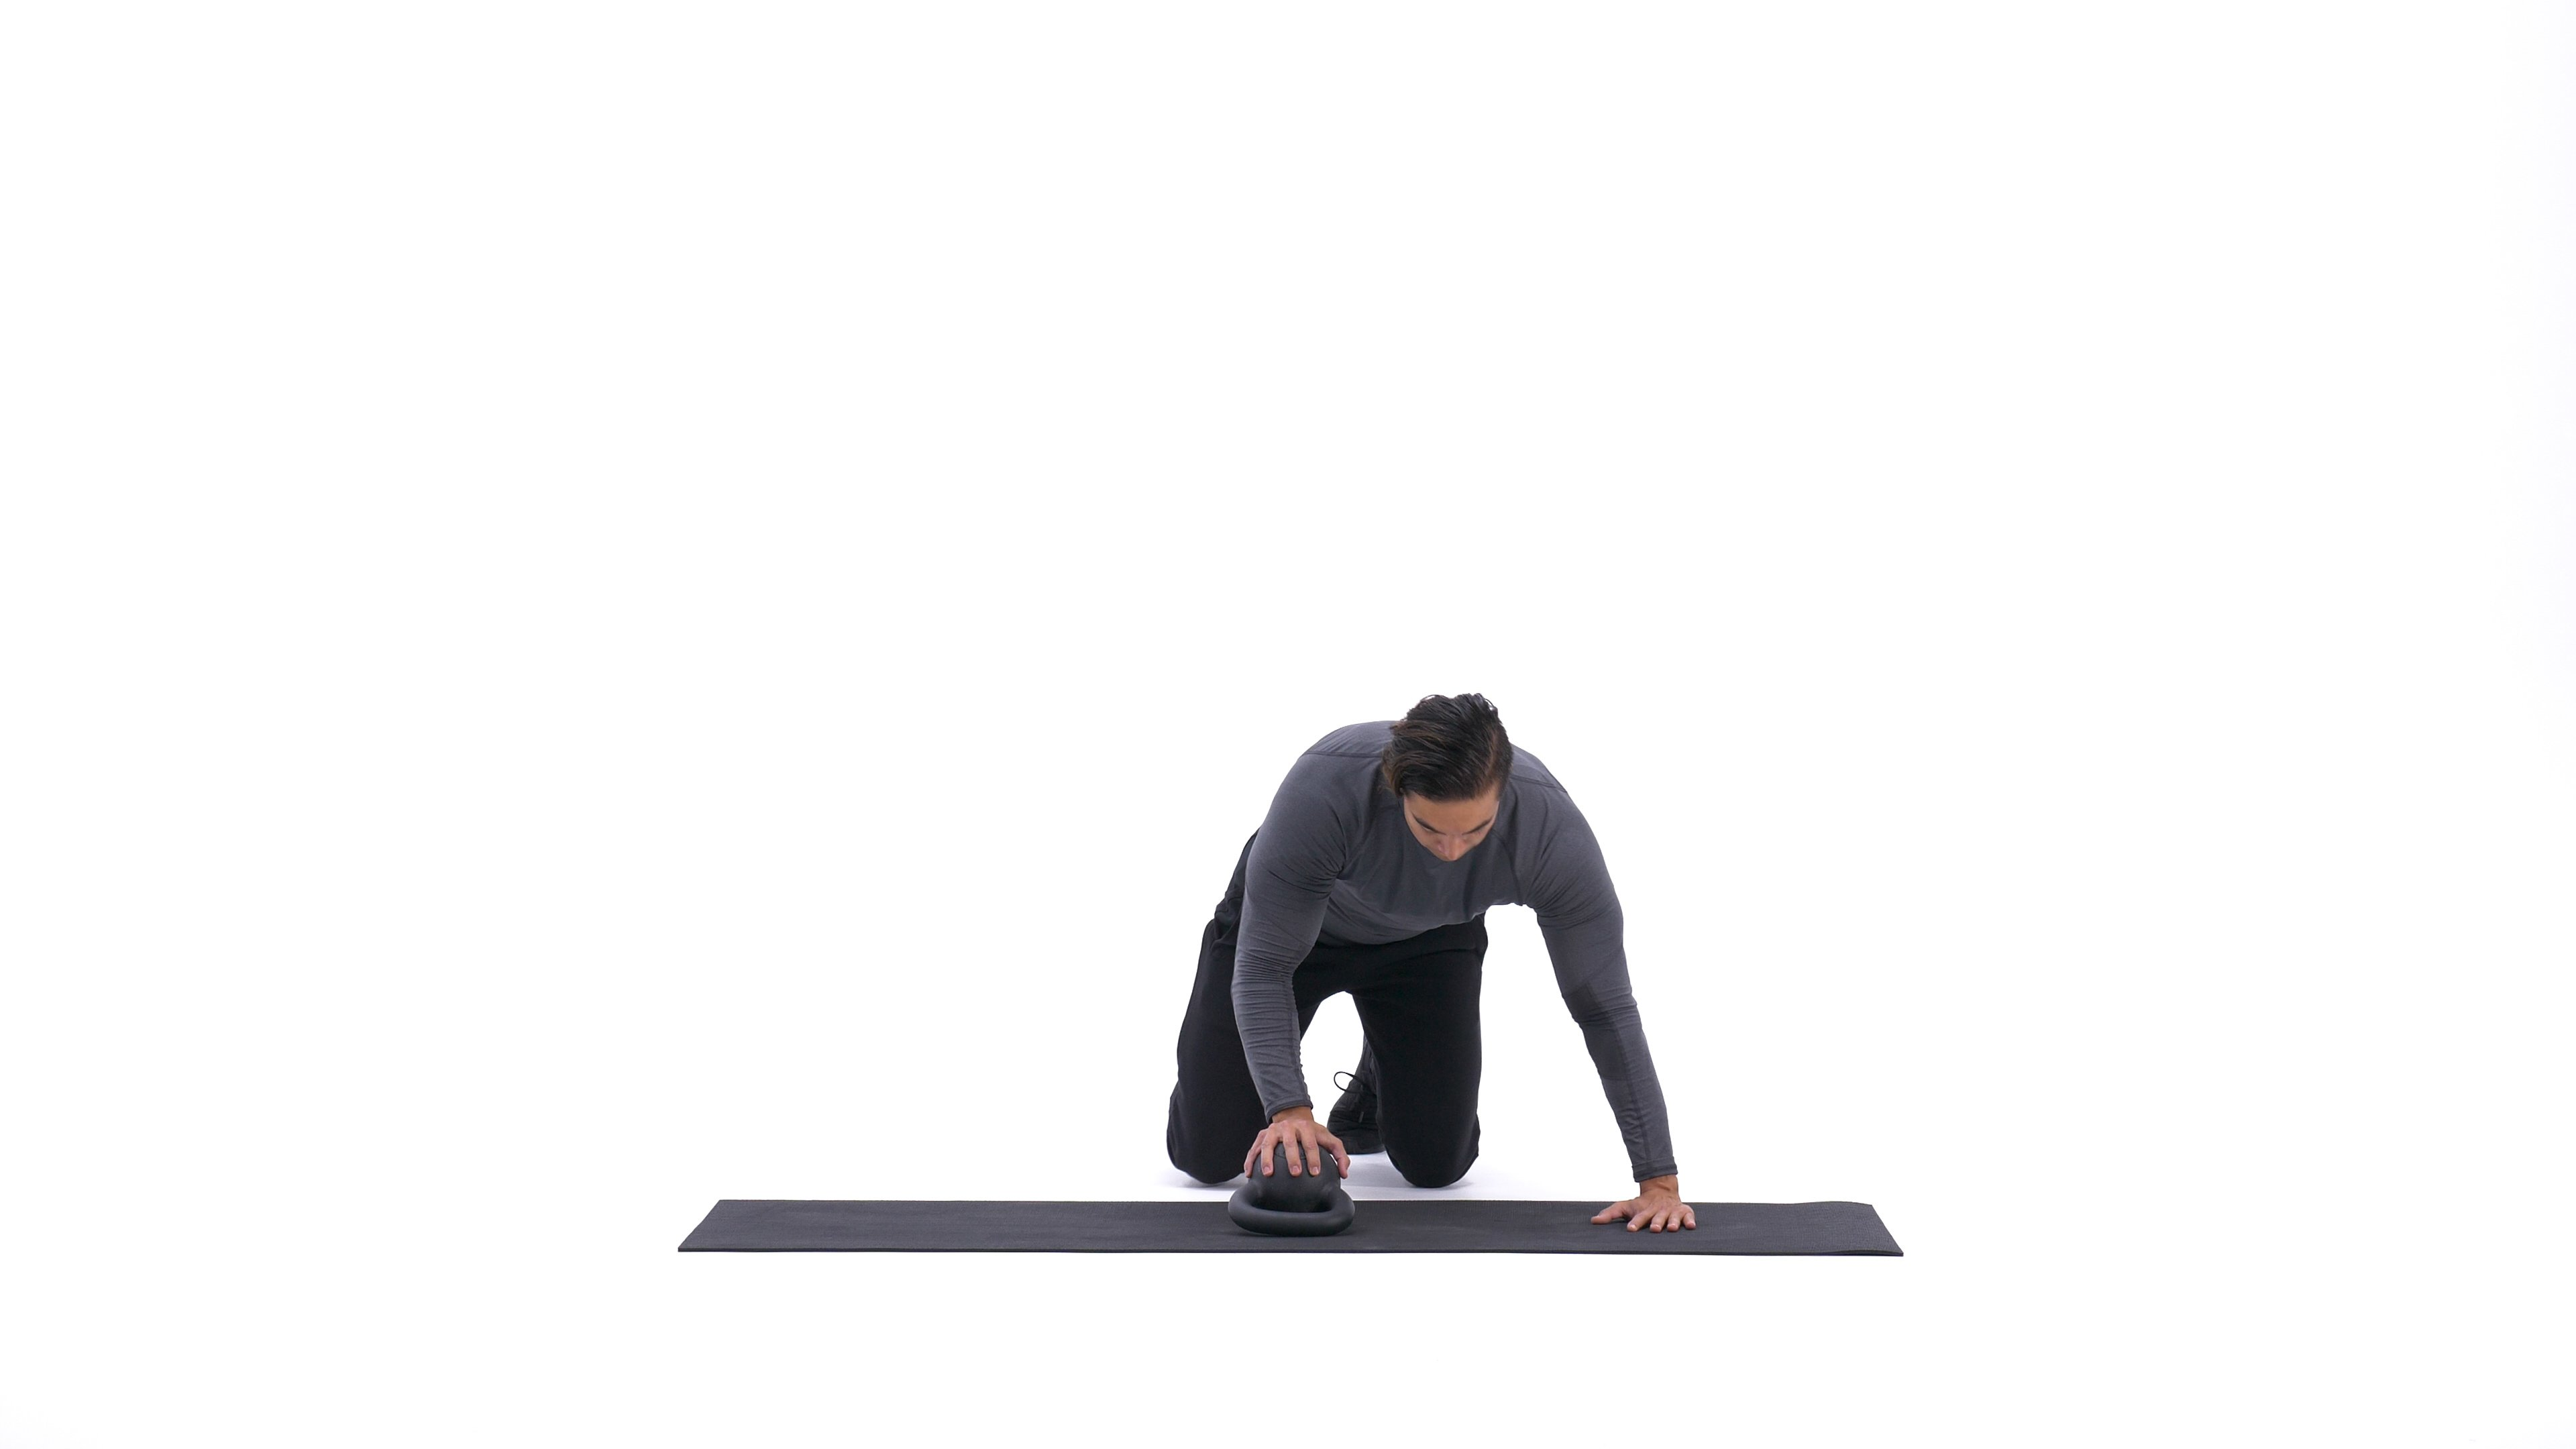 Kettlebell plyo push-up image